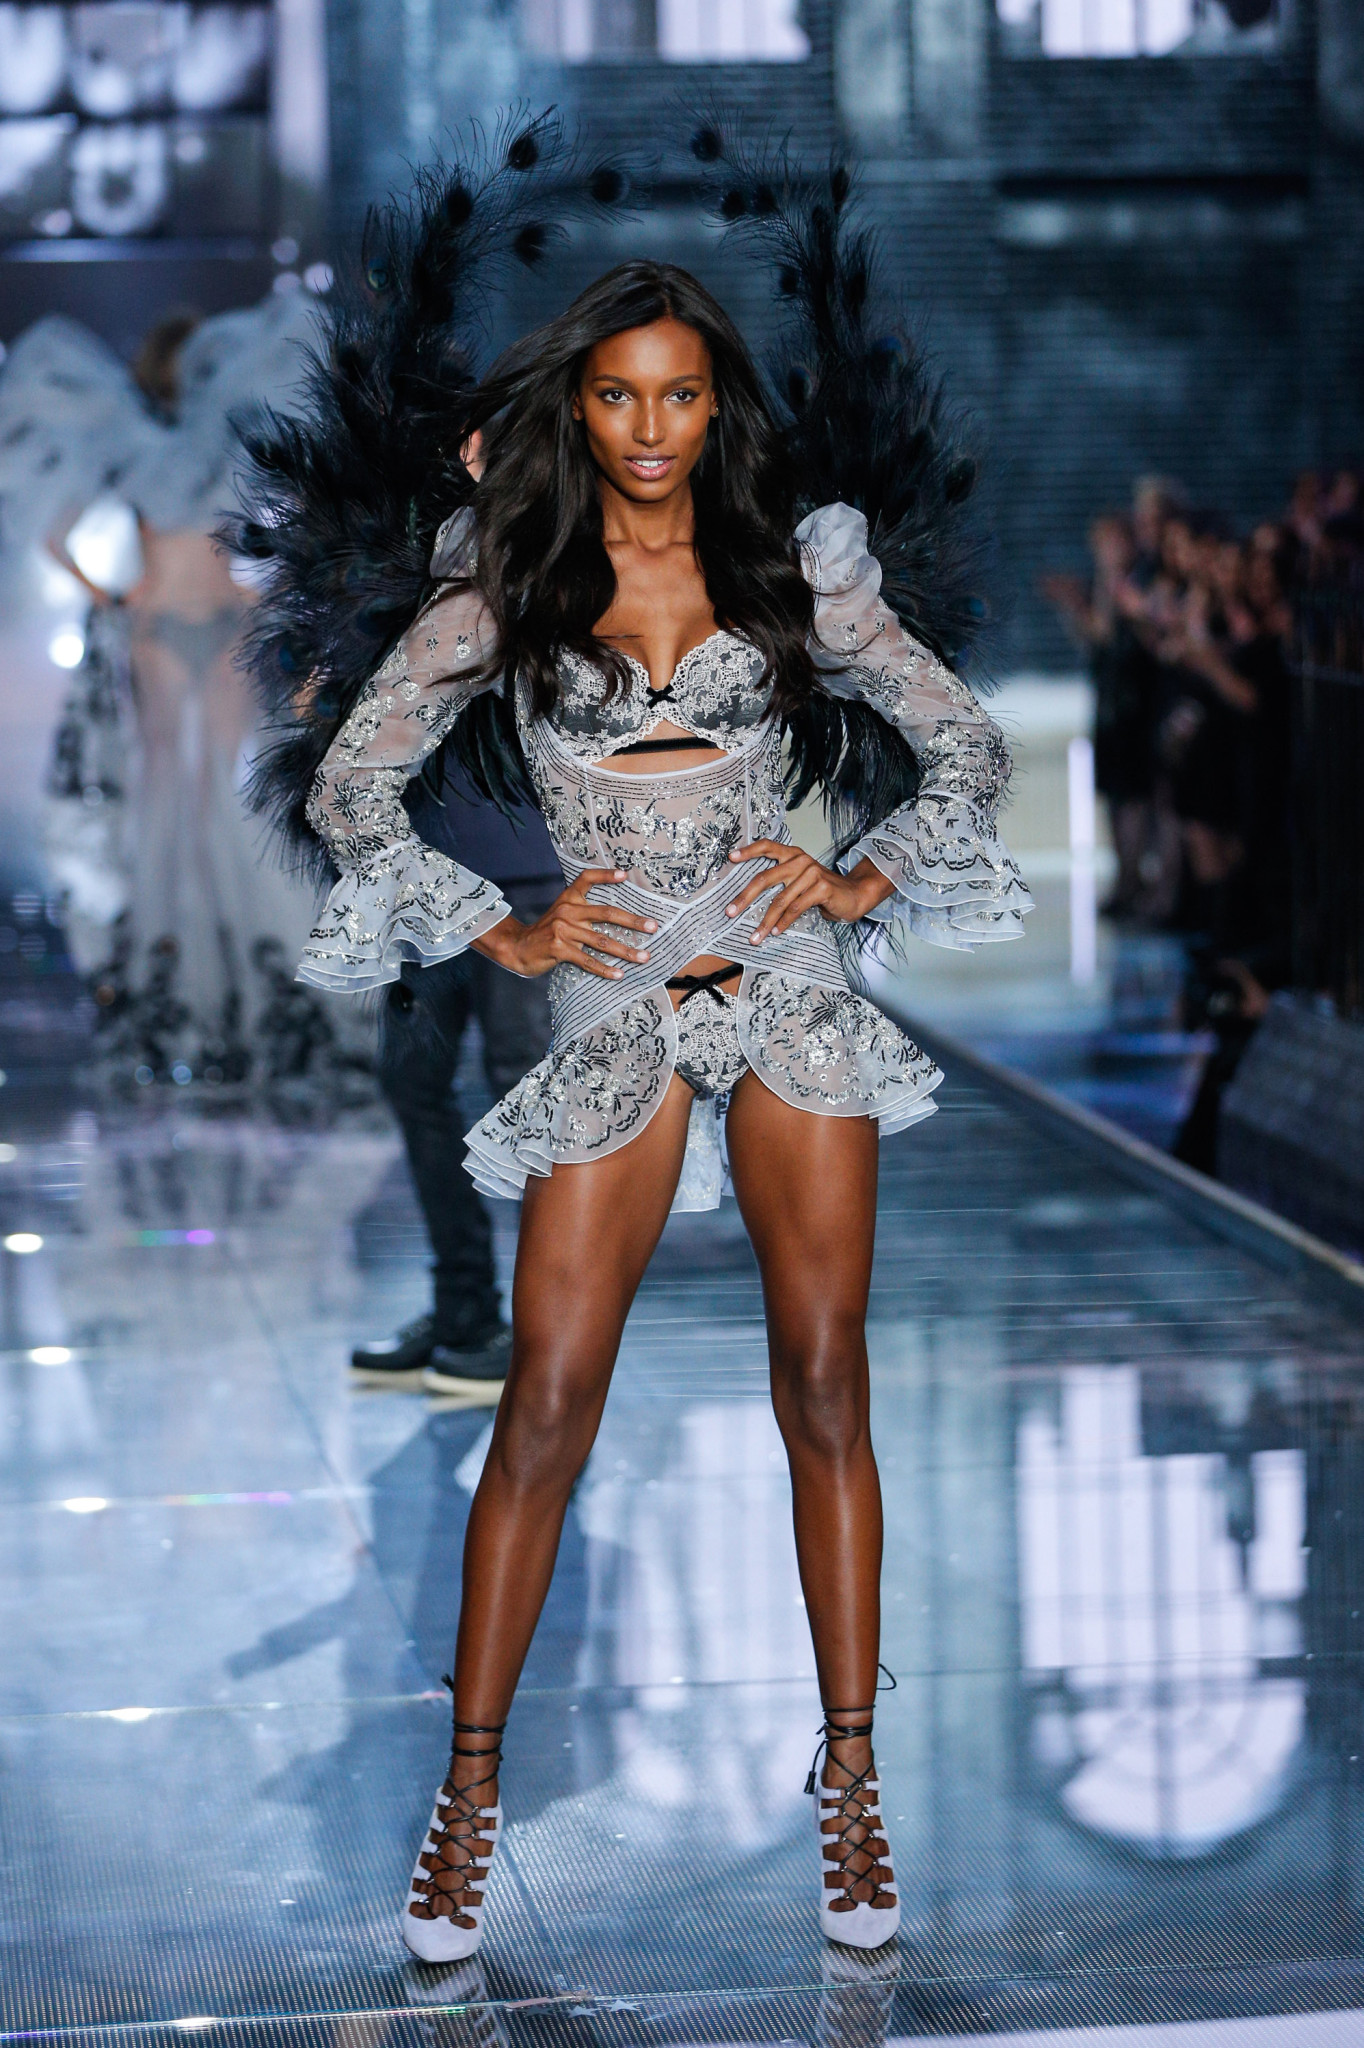 NEW YORK, NY - NOVEMBER 10: Model Jasmine Tookes walks the runway during the 2015 Victoria's Secret Fashion Show at Lexington Avenue Armory on November 10, 2015 in New York City.